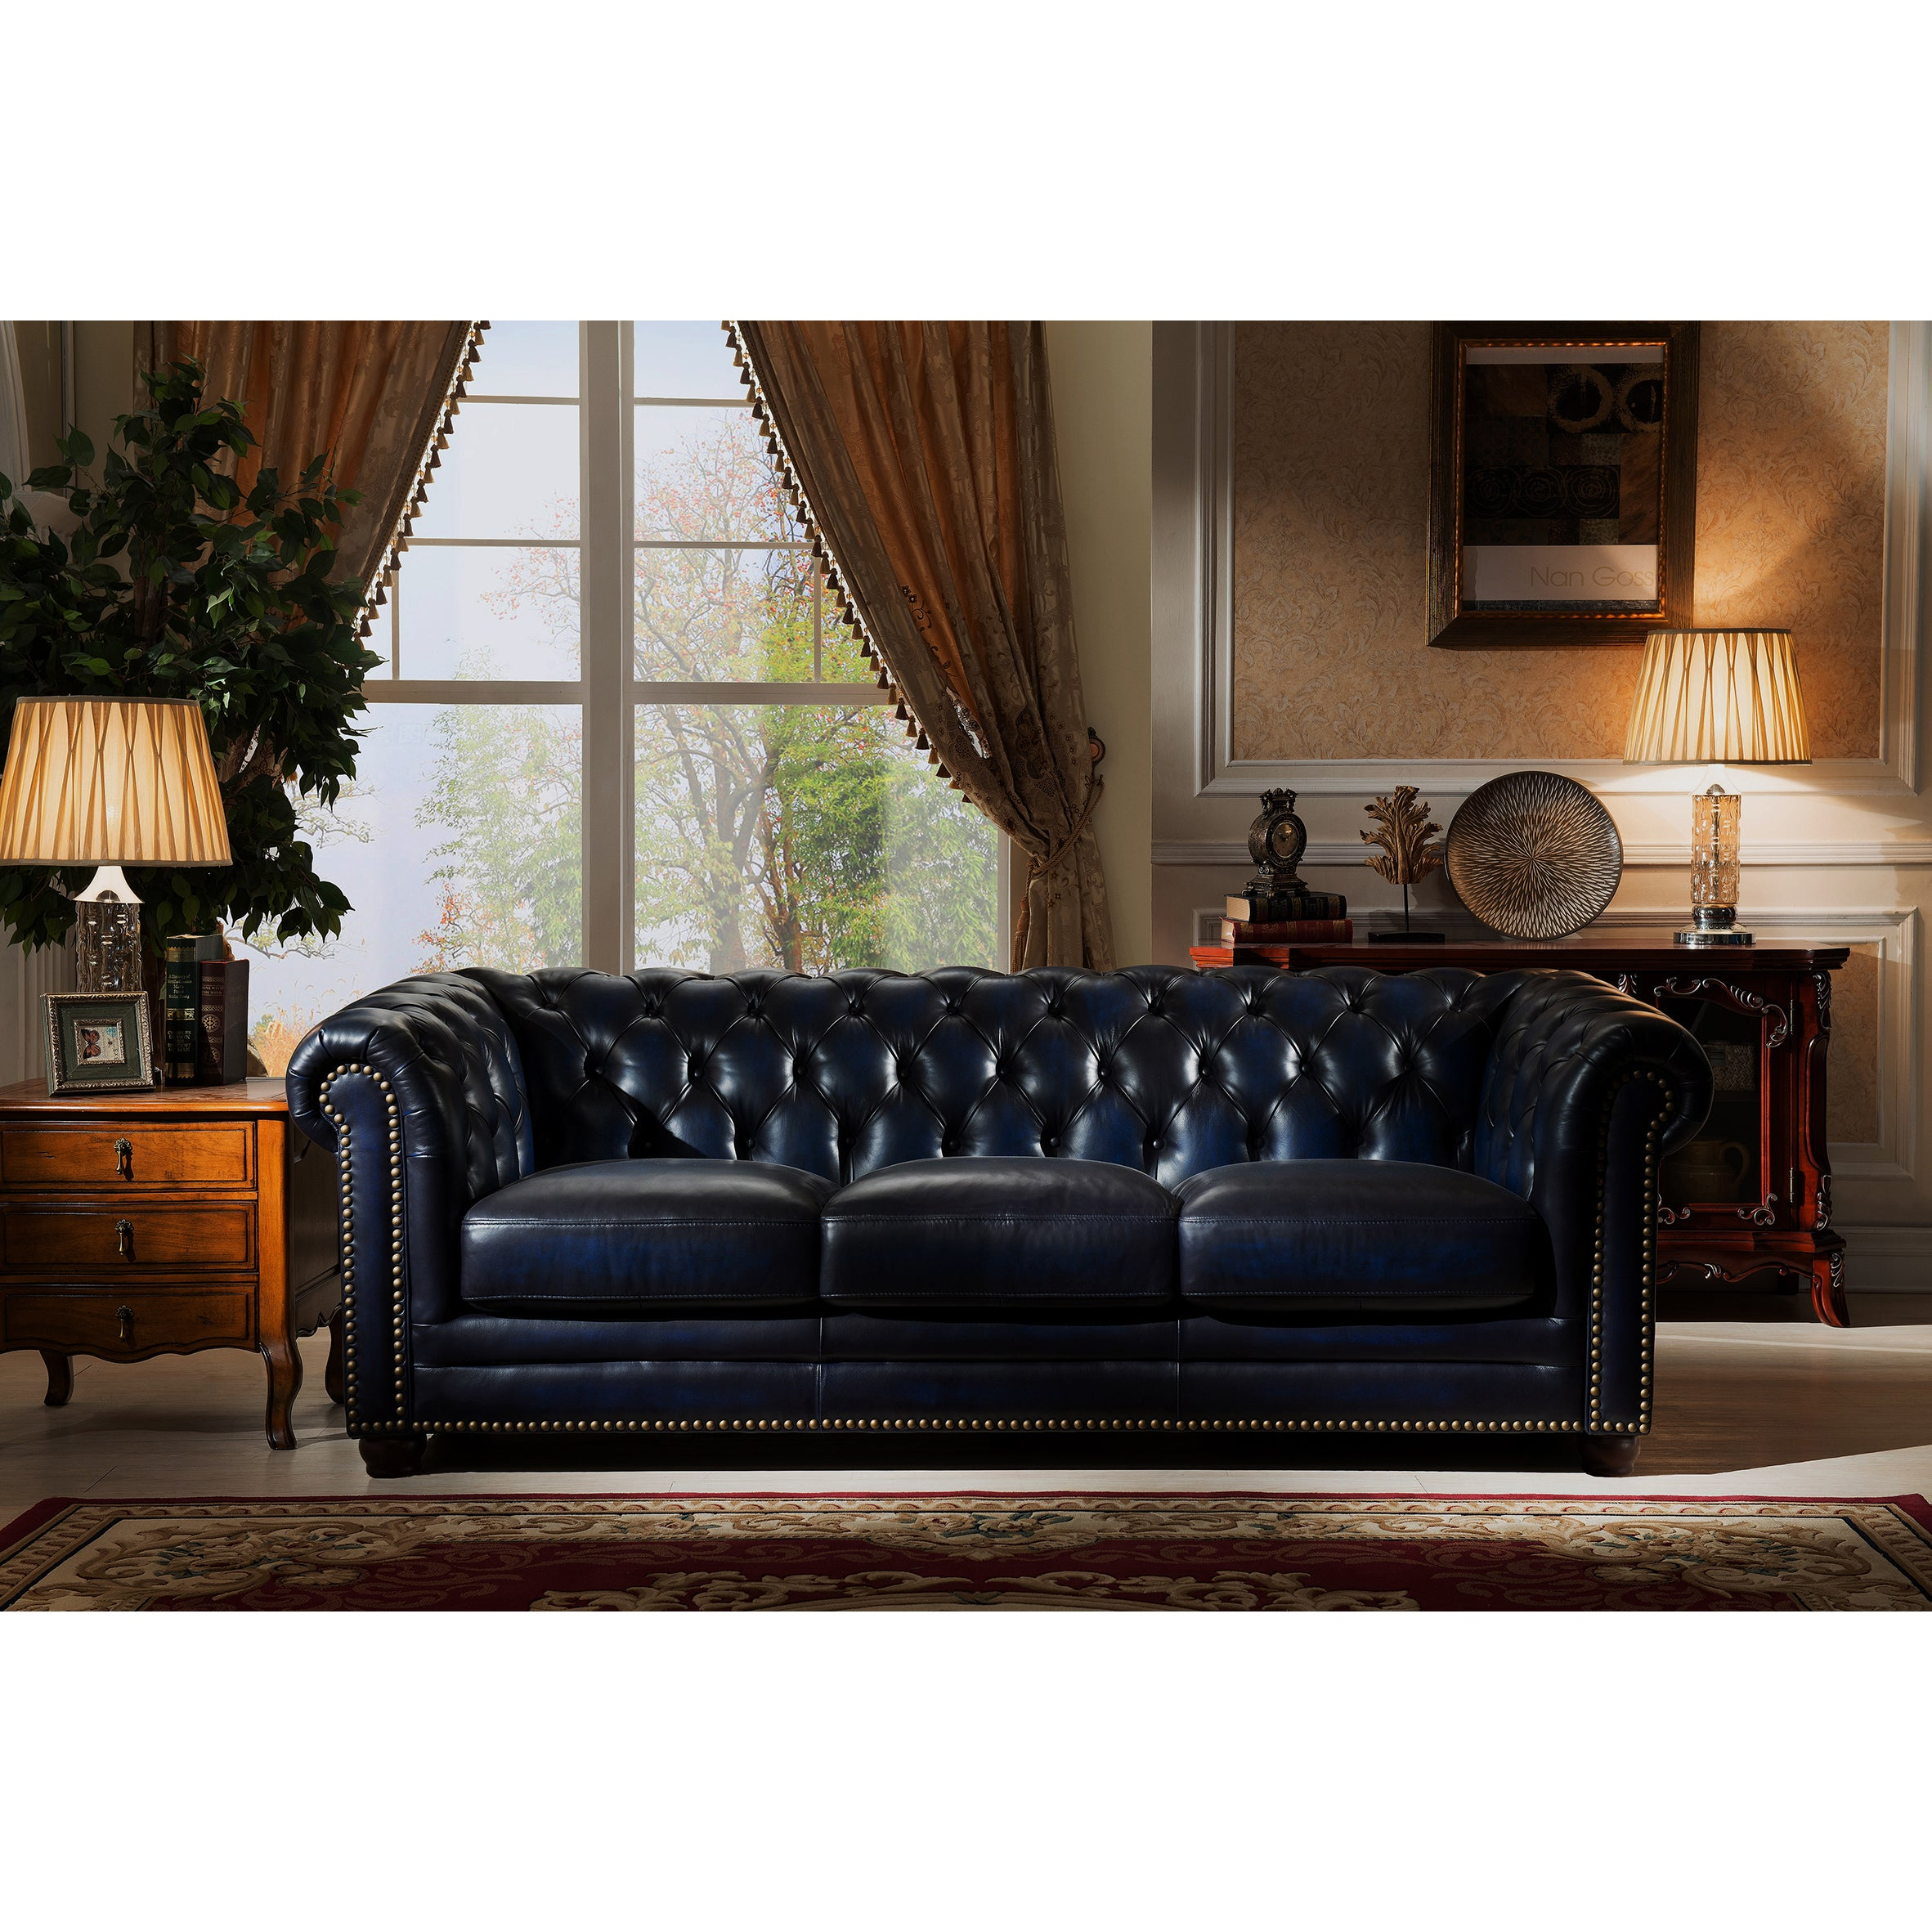 Strange Nebraska Genuine Hand Rubbed Blue Leather Chesterfield Sofa And Chair Set Beutiful Home Inspiration Truamahrainfo